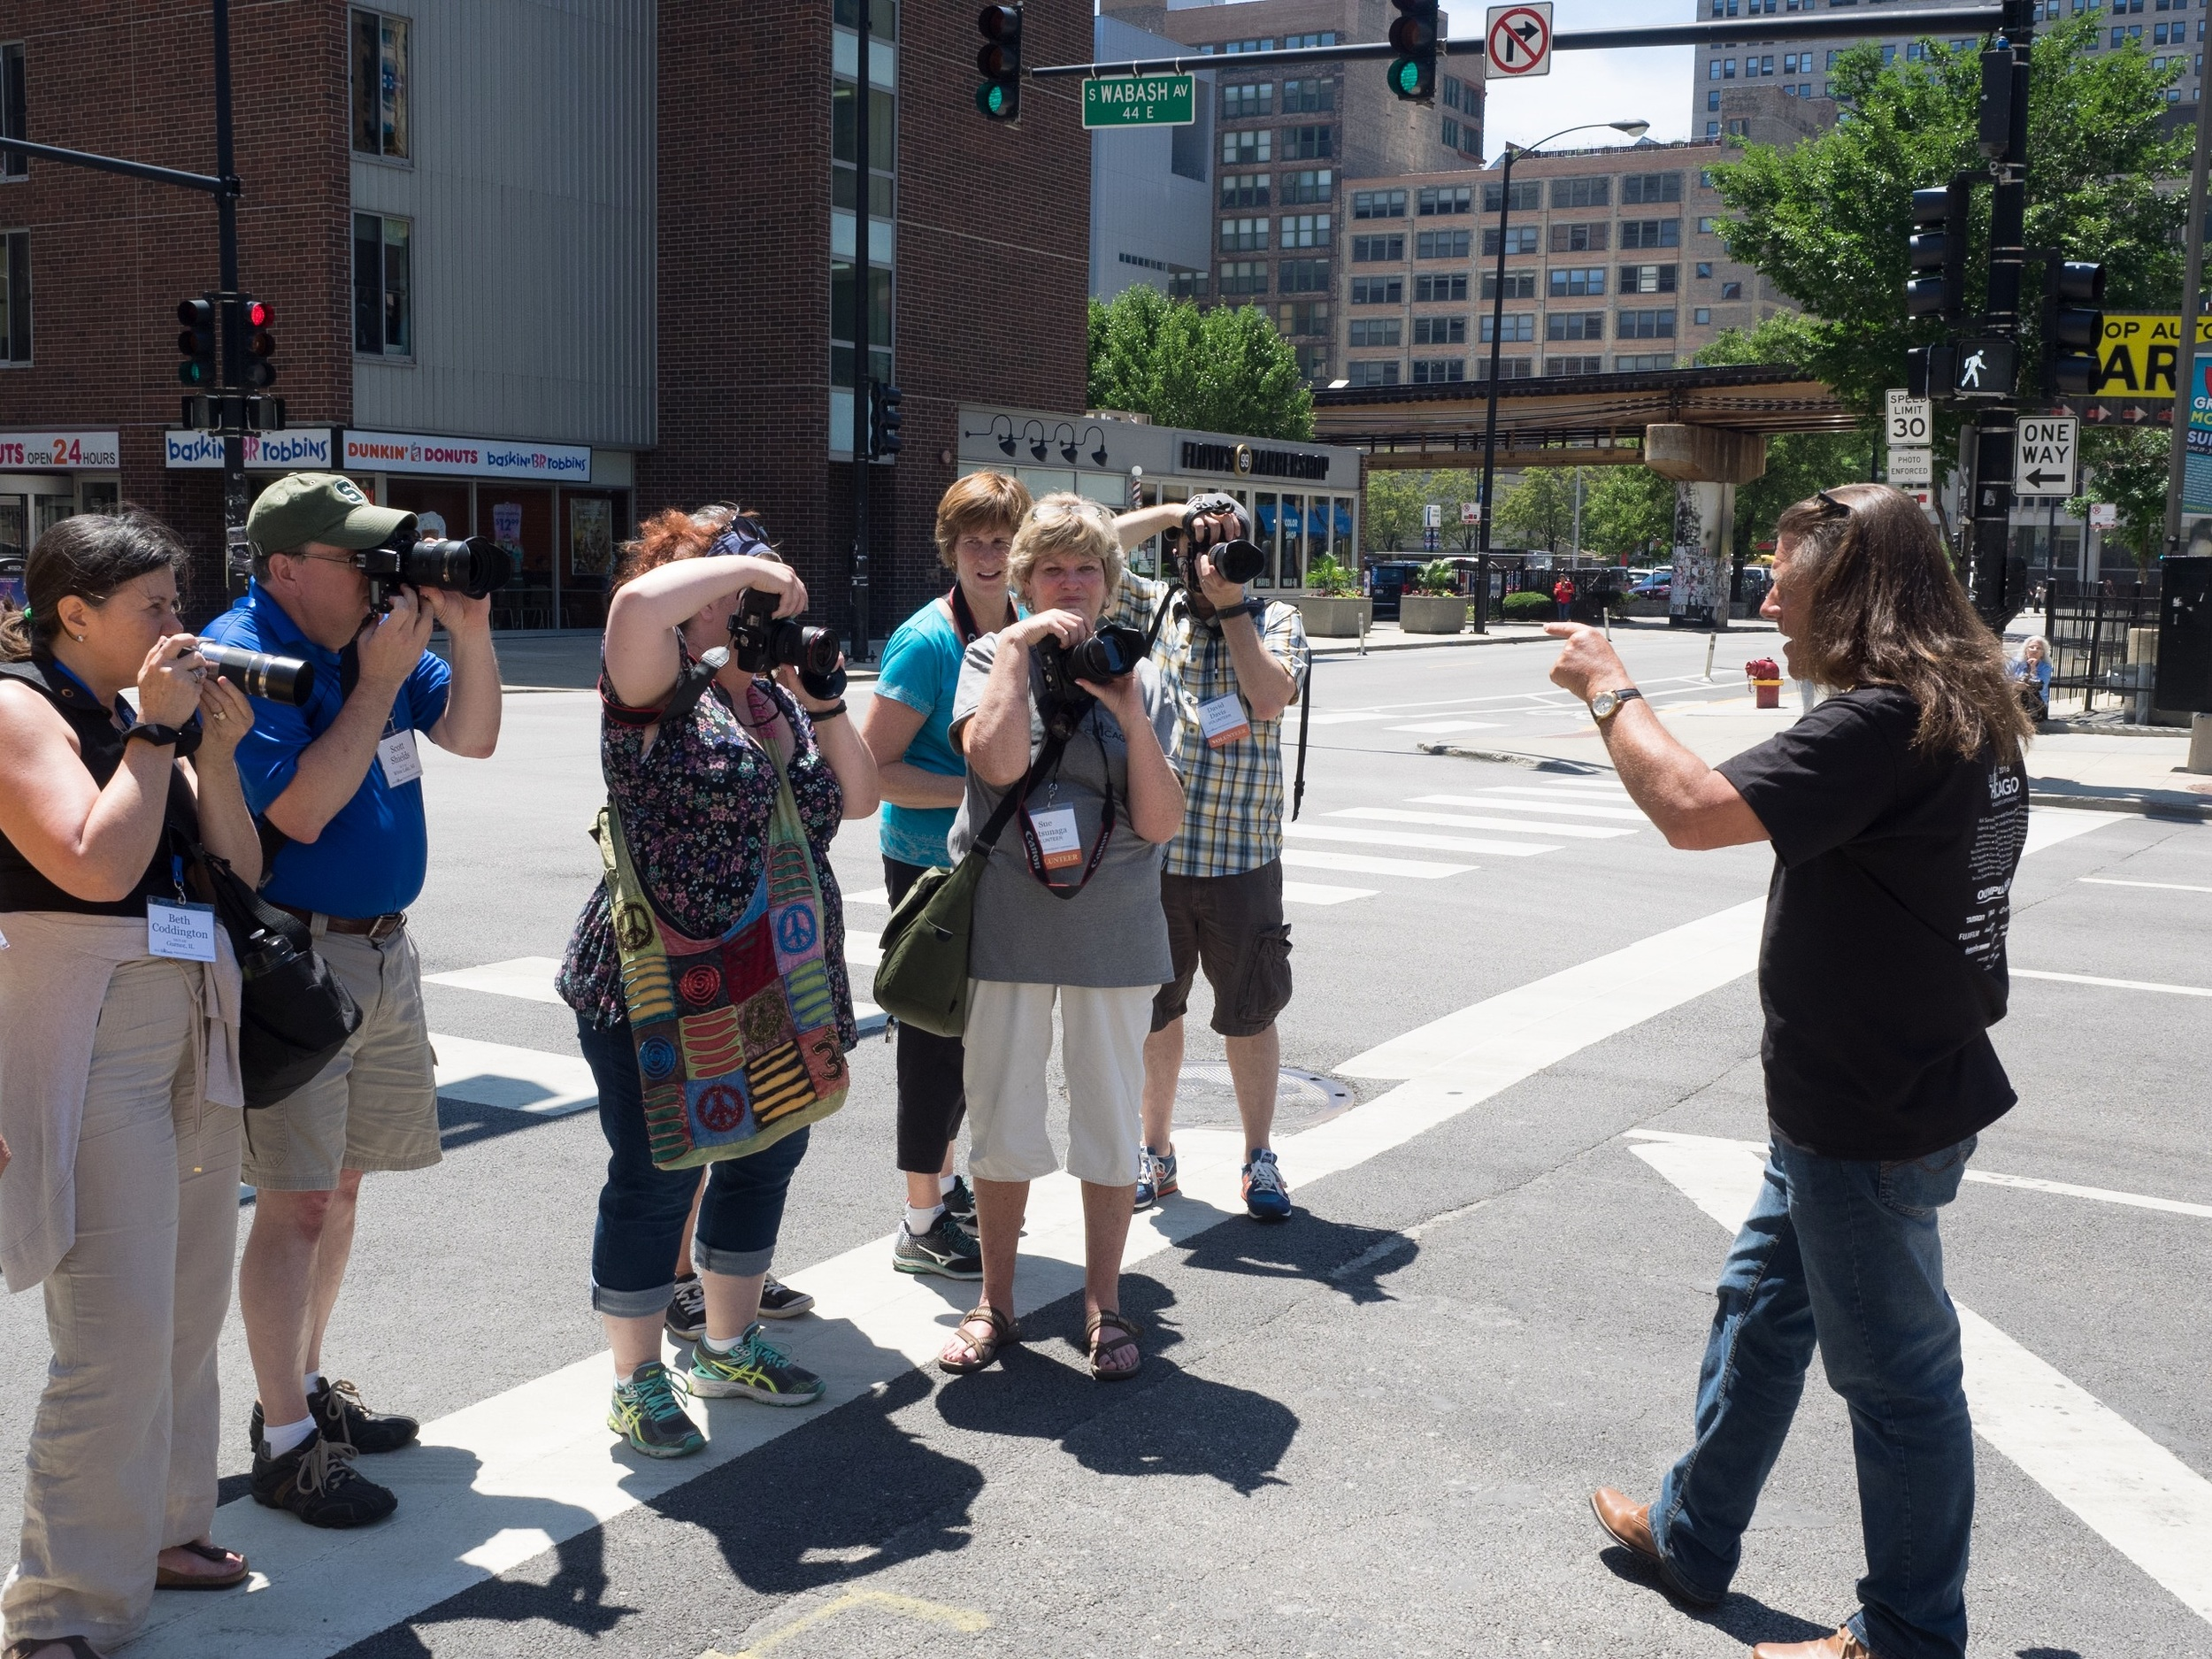 Bryan Peterson giving workshop participants directions for their next shooting assignment.